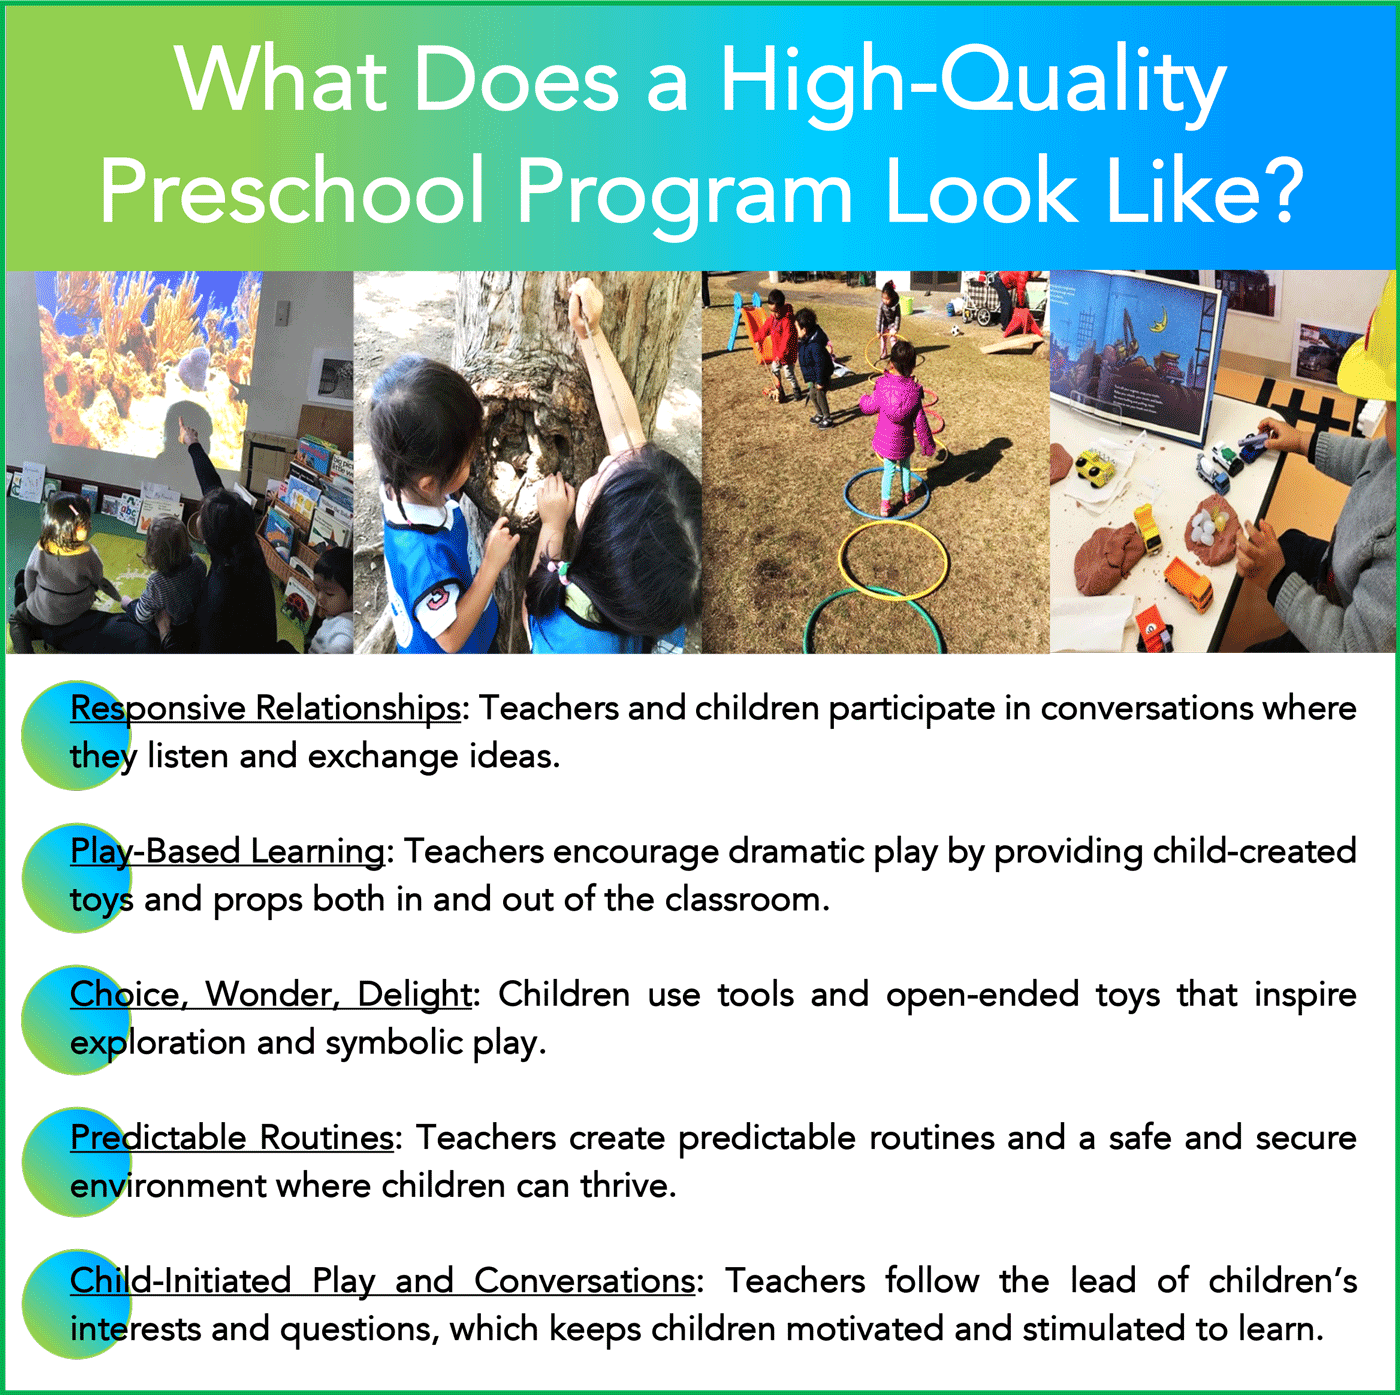 Komazawa park international school | What Does a high-quality Preschool Program Look Like?